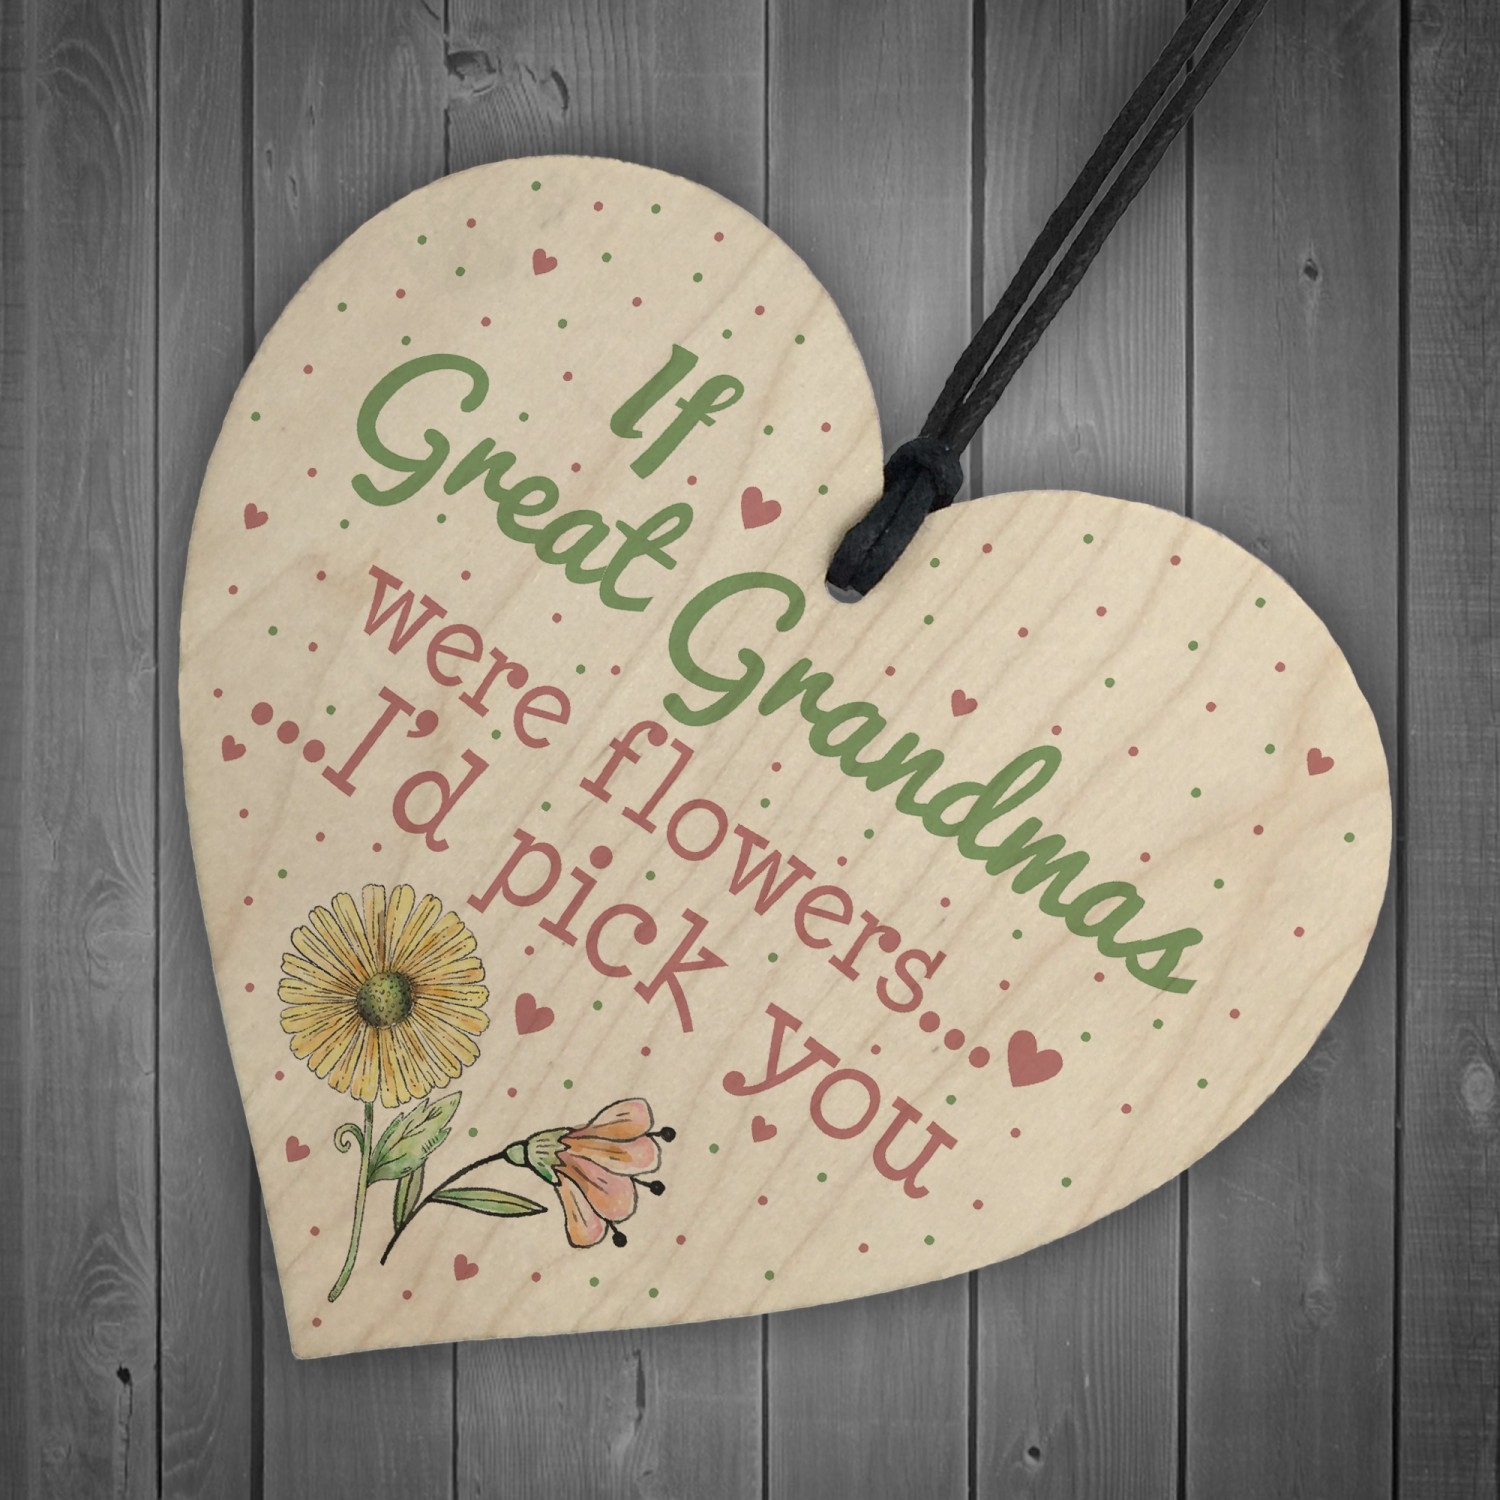 Great Grandma Birthday Gifts Hanging Wooden Heart Christmas Gift